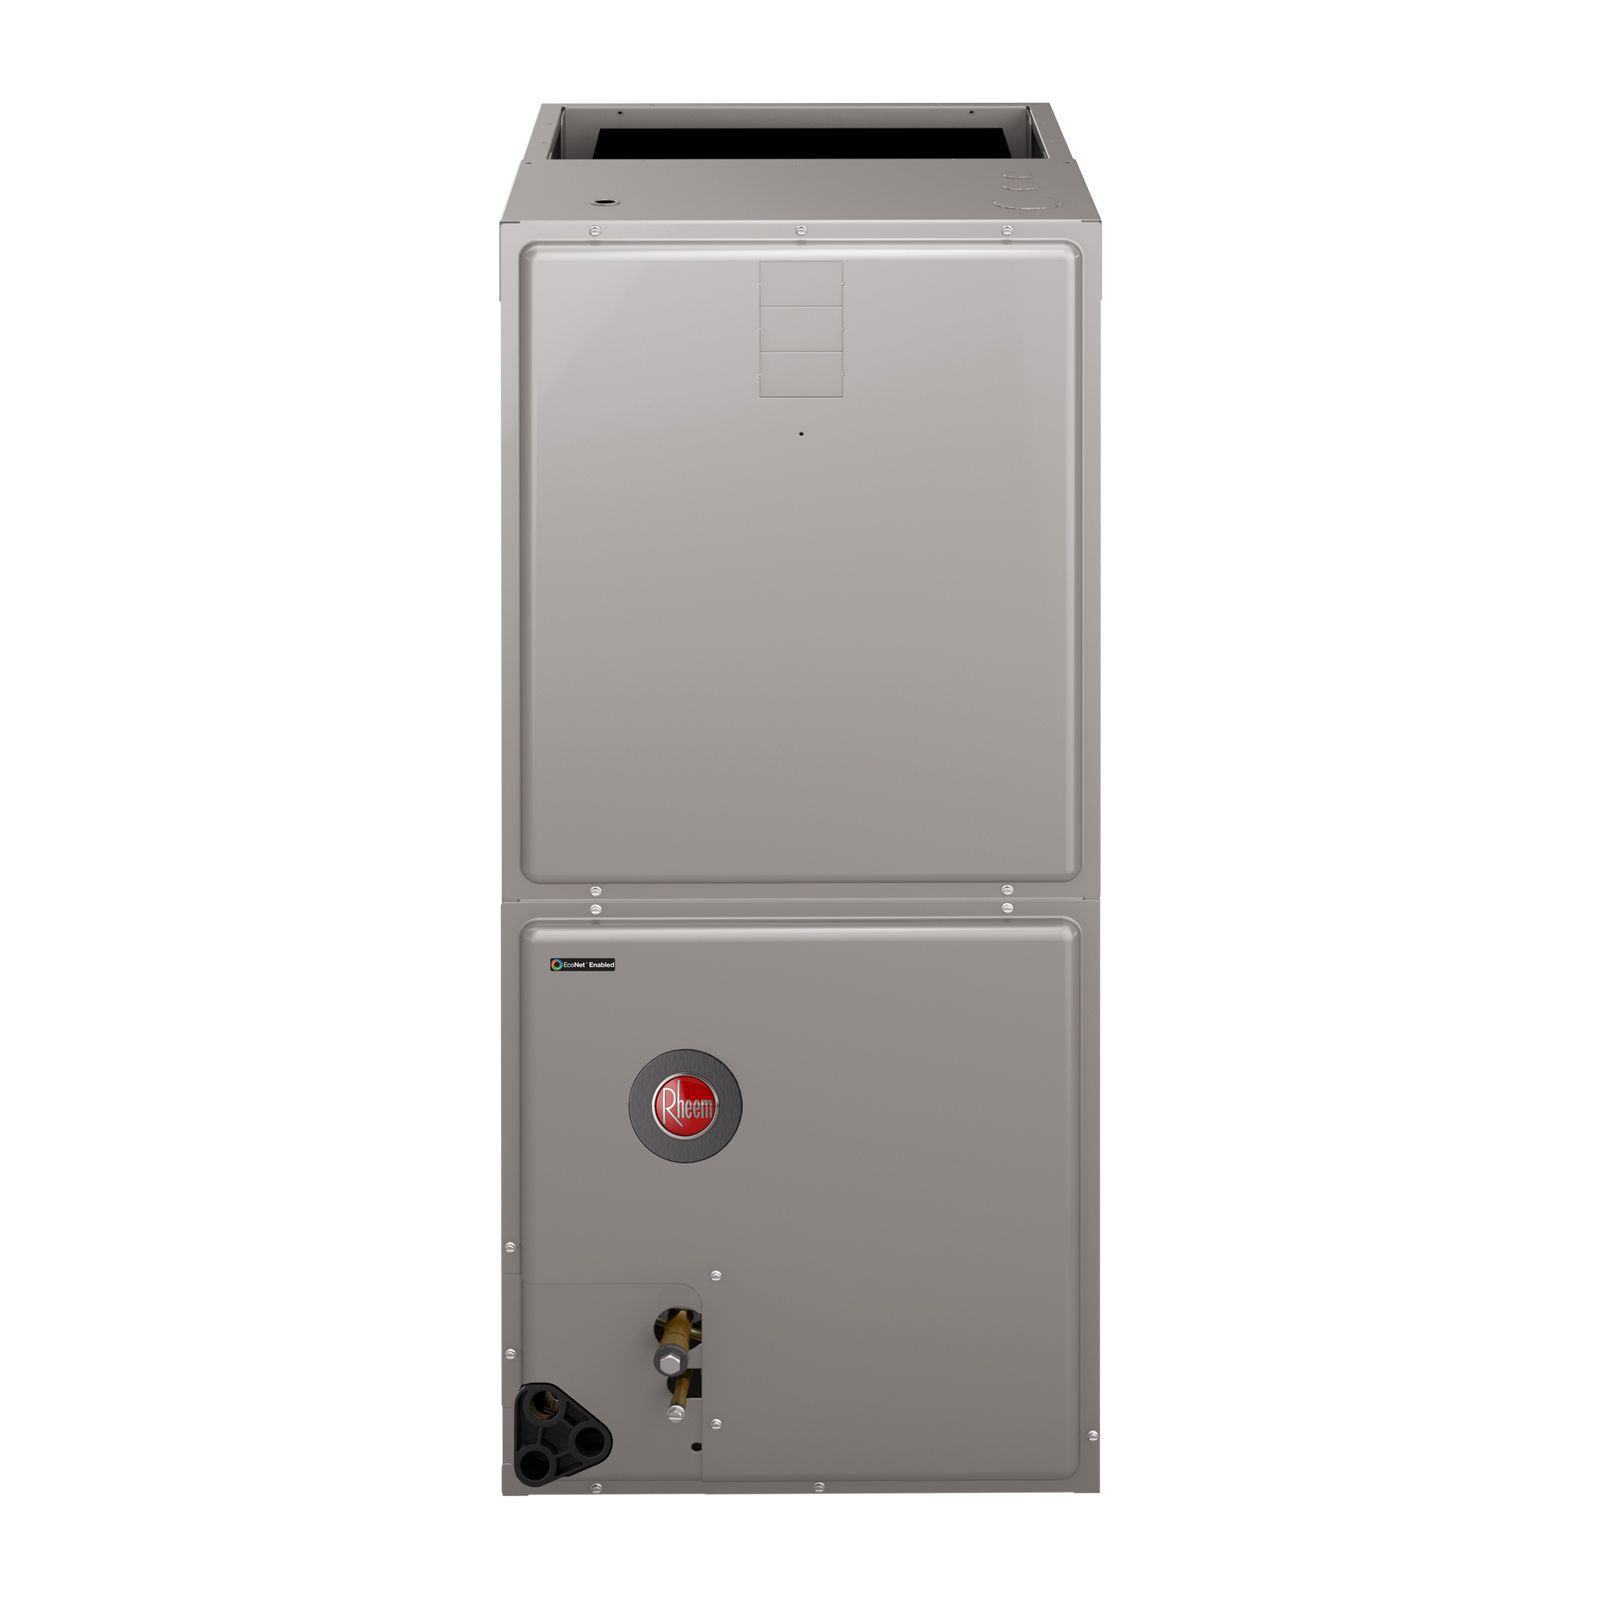 "Rheem RHMV3617SEACJA - 3 Ton, Modulating, EcoNet Enabled Air Handler, ECM Motor, EEV Valve, 17"" Wide, 208/240V, 1Ph, 60Hz"